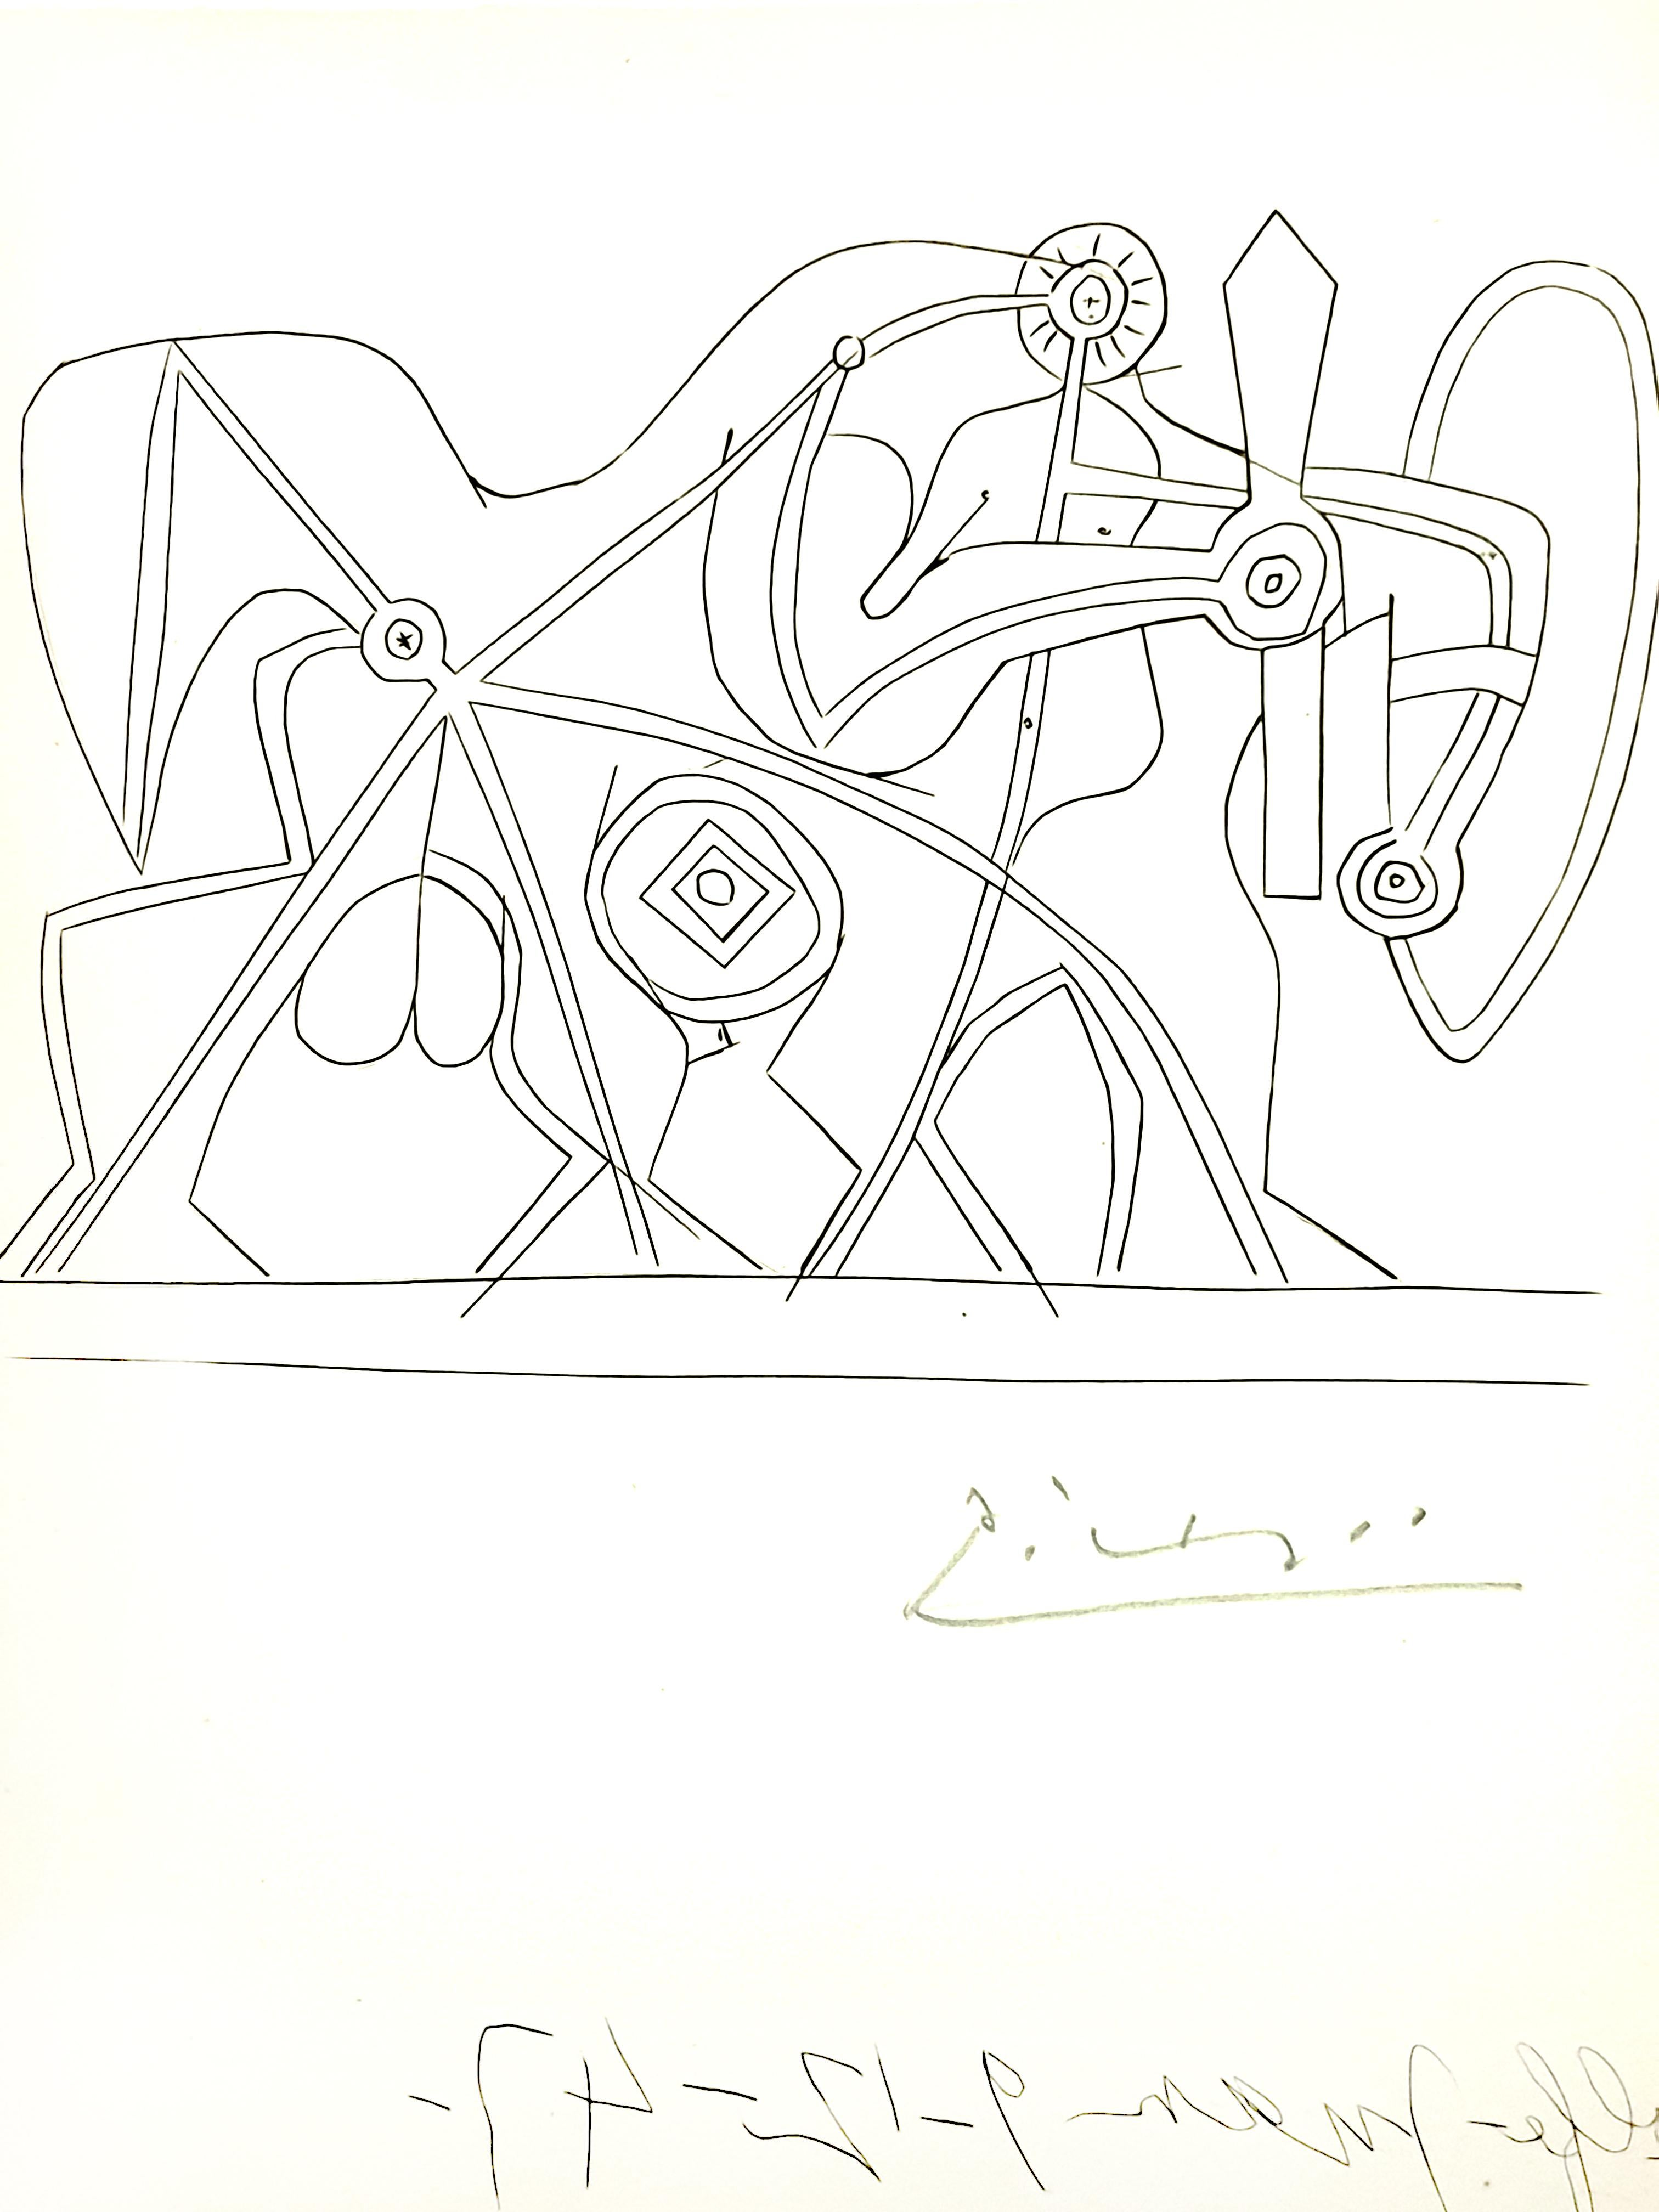 Pablo Picasso - The Knight - Original Handsigned Etching